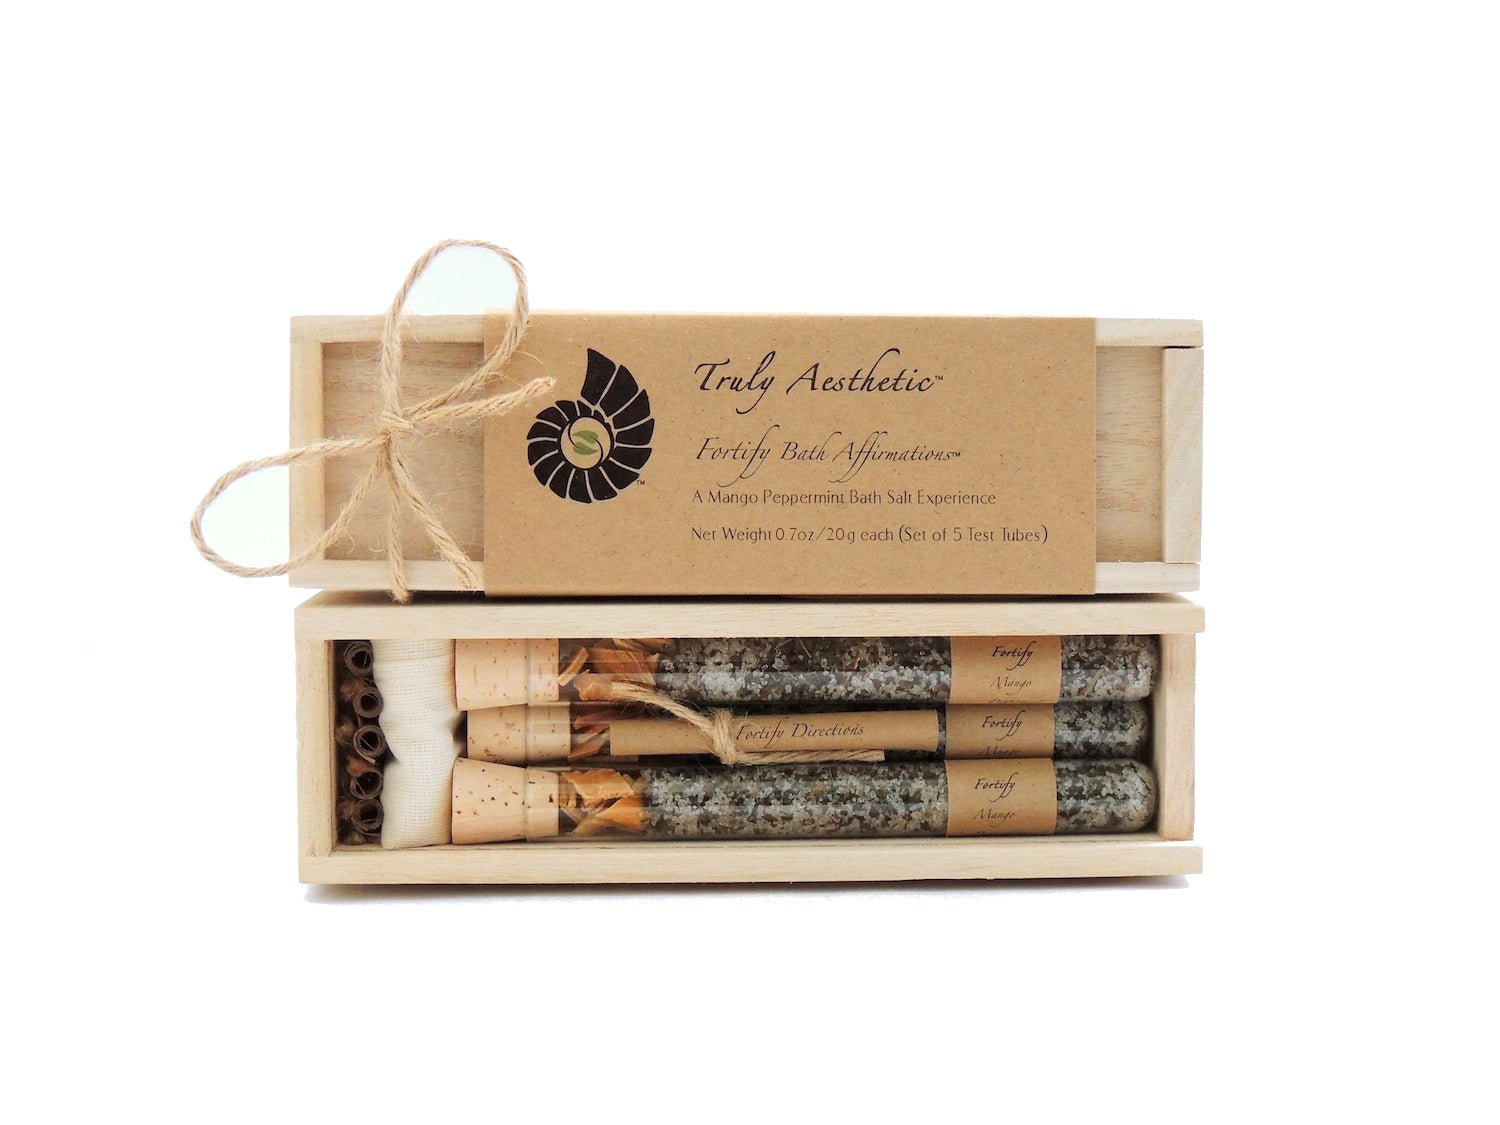 Truly Aesthetic Fortify Mango Peppermint Bath Affirmations Gift Box Set Packaging